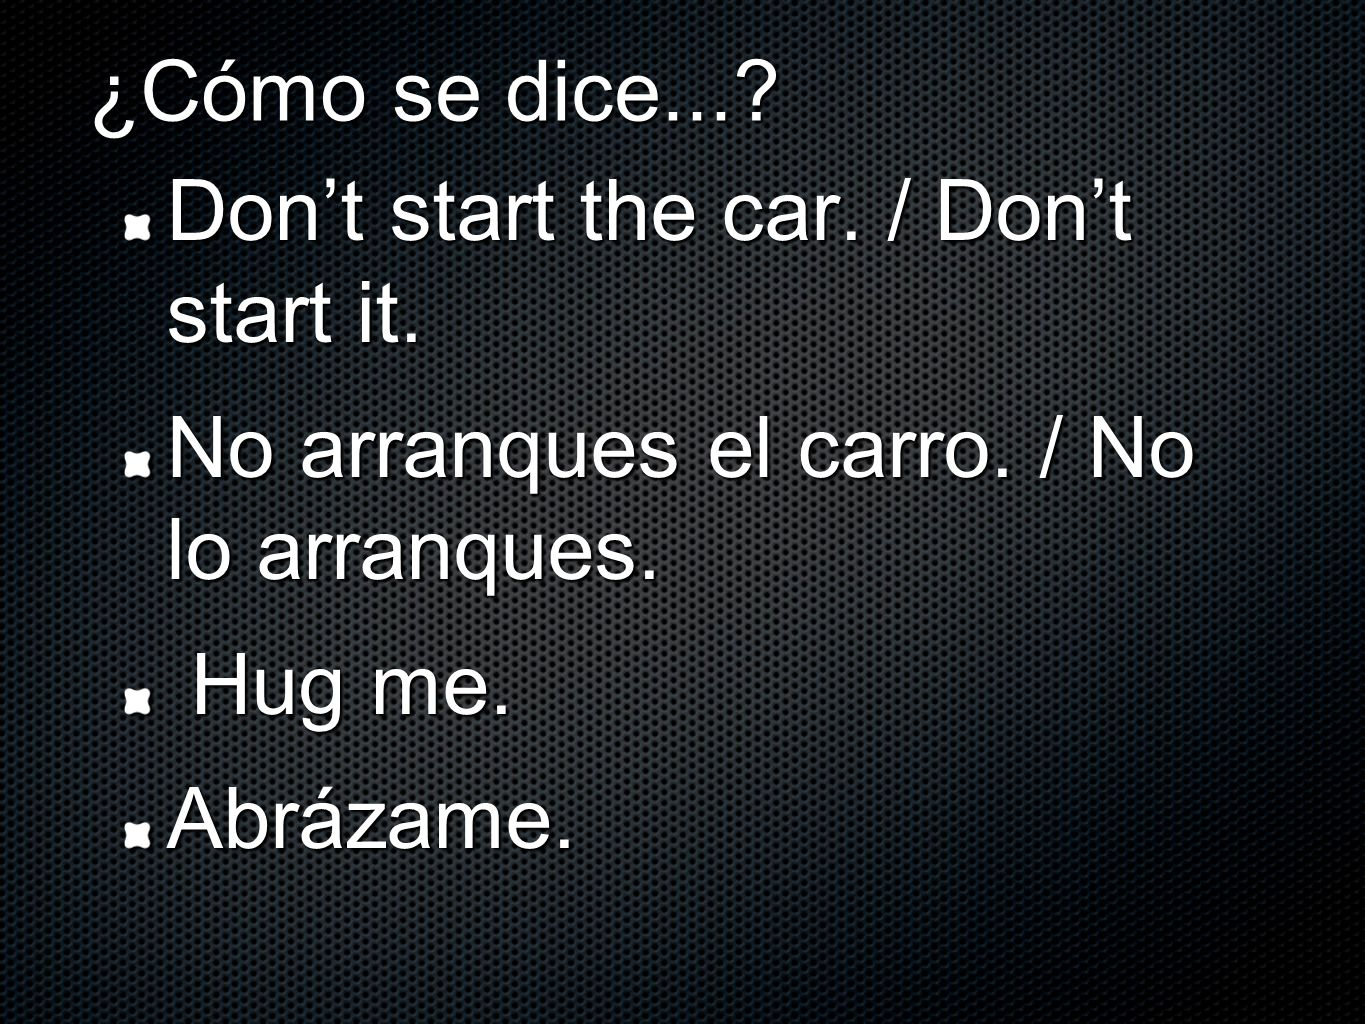 ¿Cómo se dice.... Dont start the car. / Dont start it.